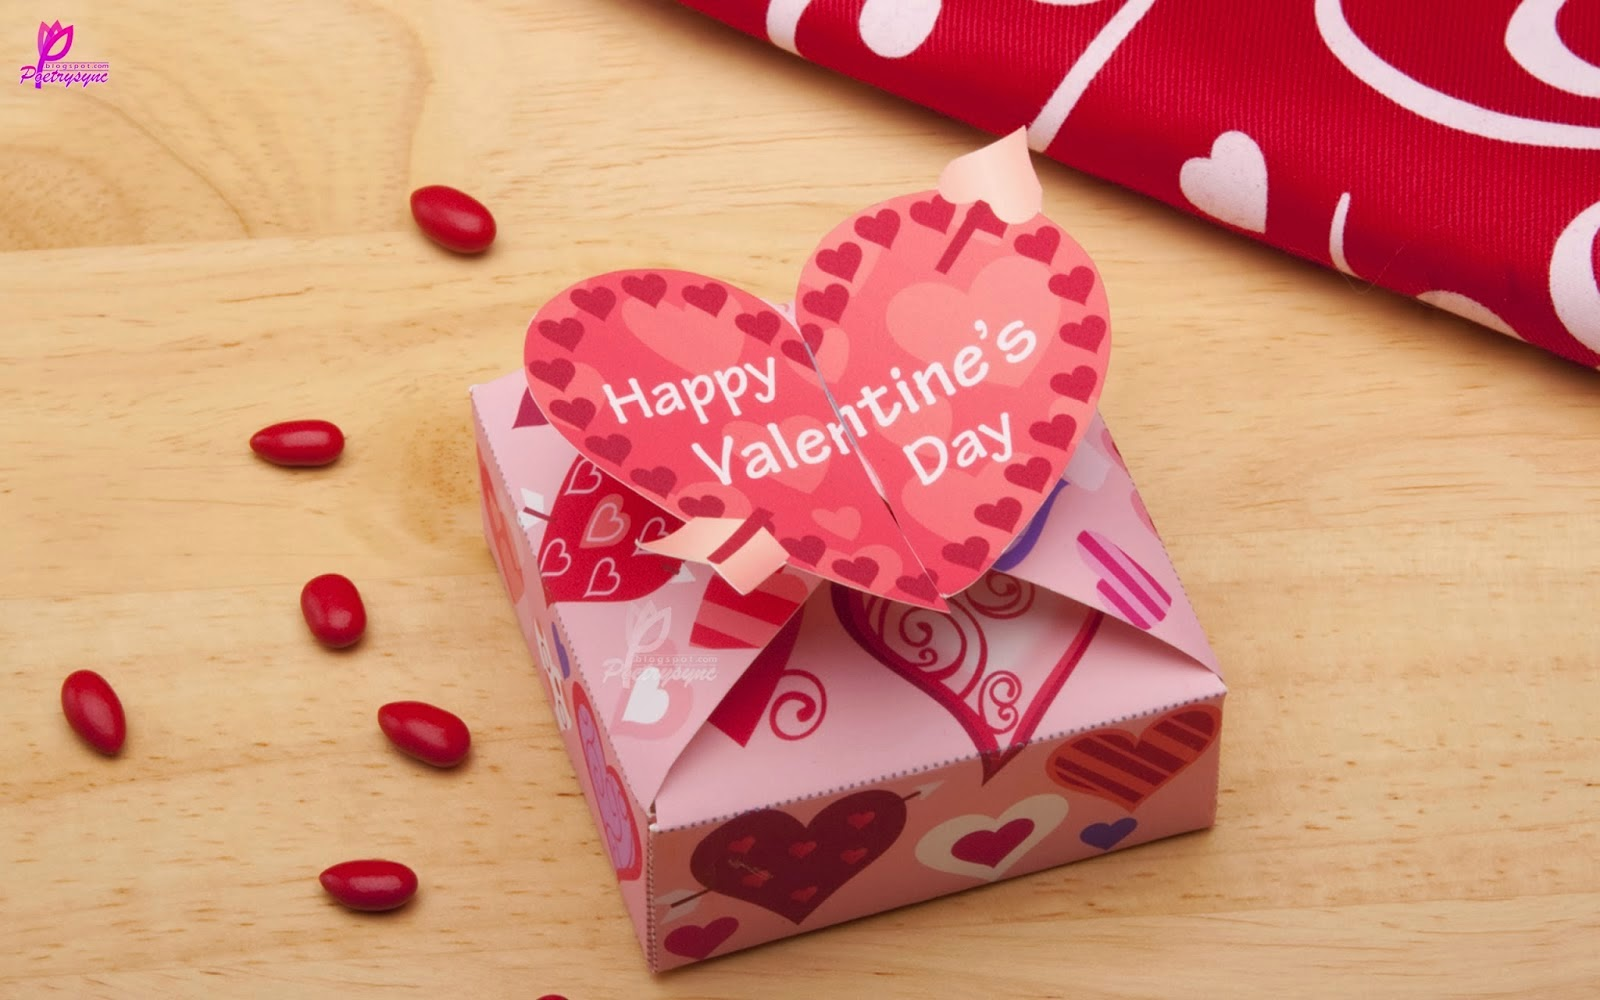 Happy Valentines Day Images Happy Valentines day 2015 Quotes – How to Make a Good Valentines Day Card